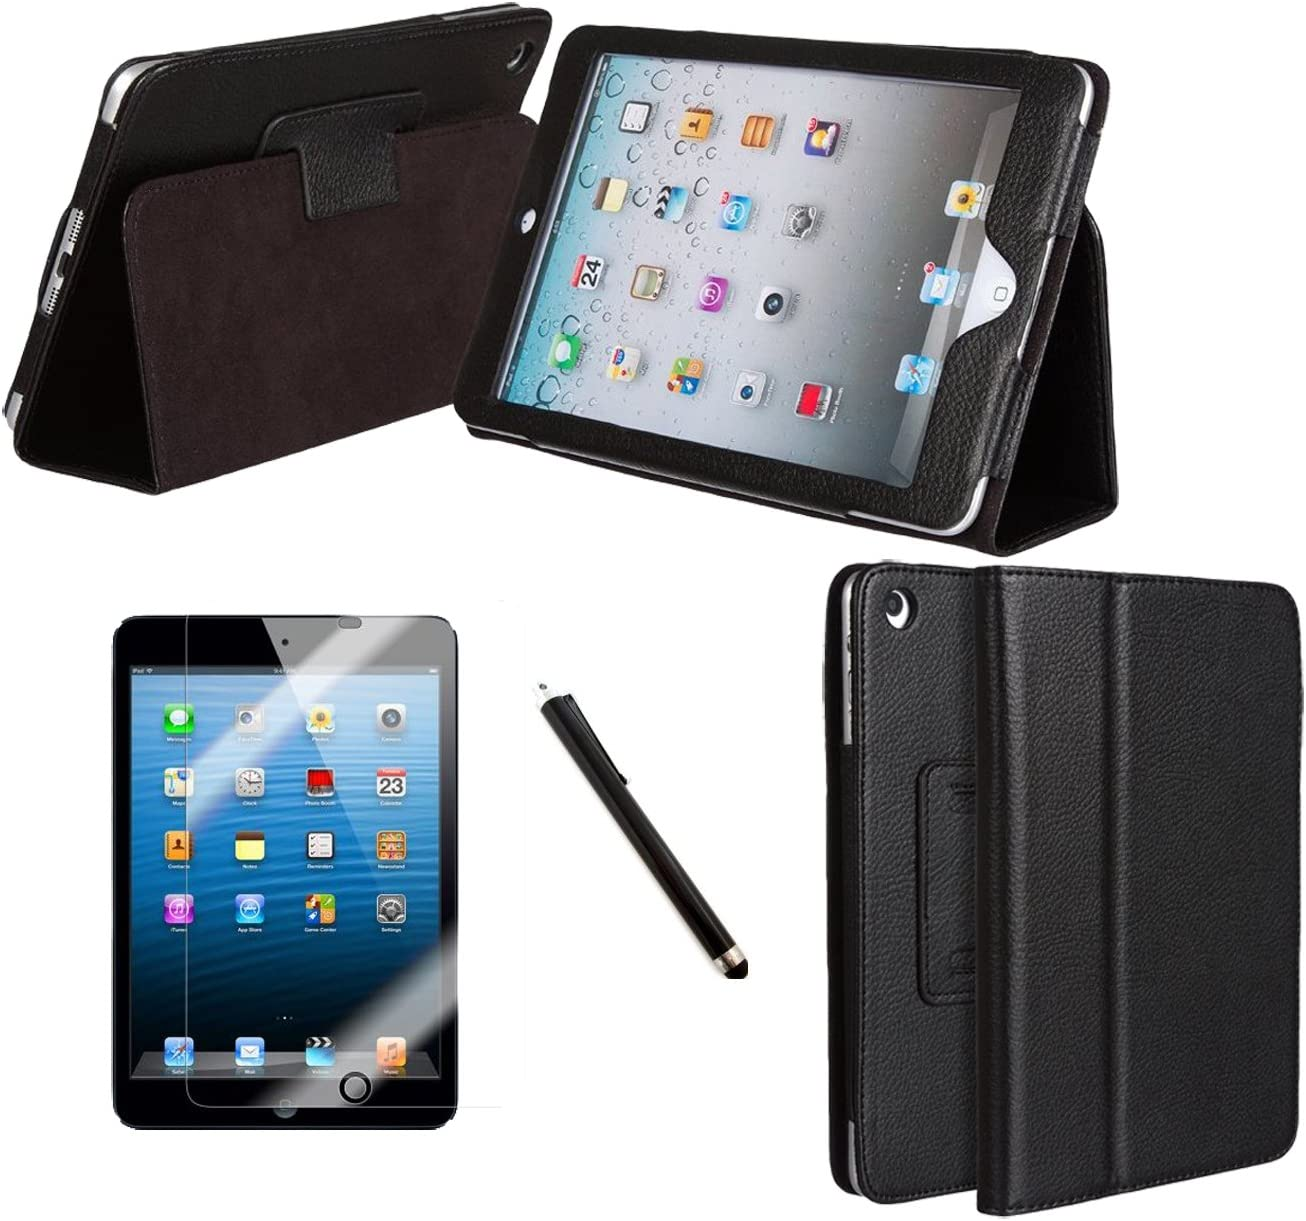 Zeba/® Slim Fit Executive Black PU Leather Multi Function Stand Case with Built-in Magnet for Sleep//Wake feature for the Ipad Mini Tablet includes Screen Protector /& Stylus Pen